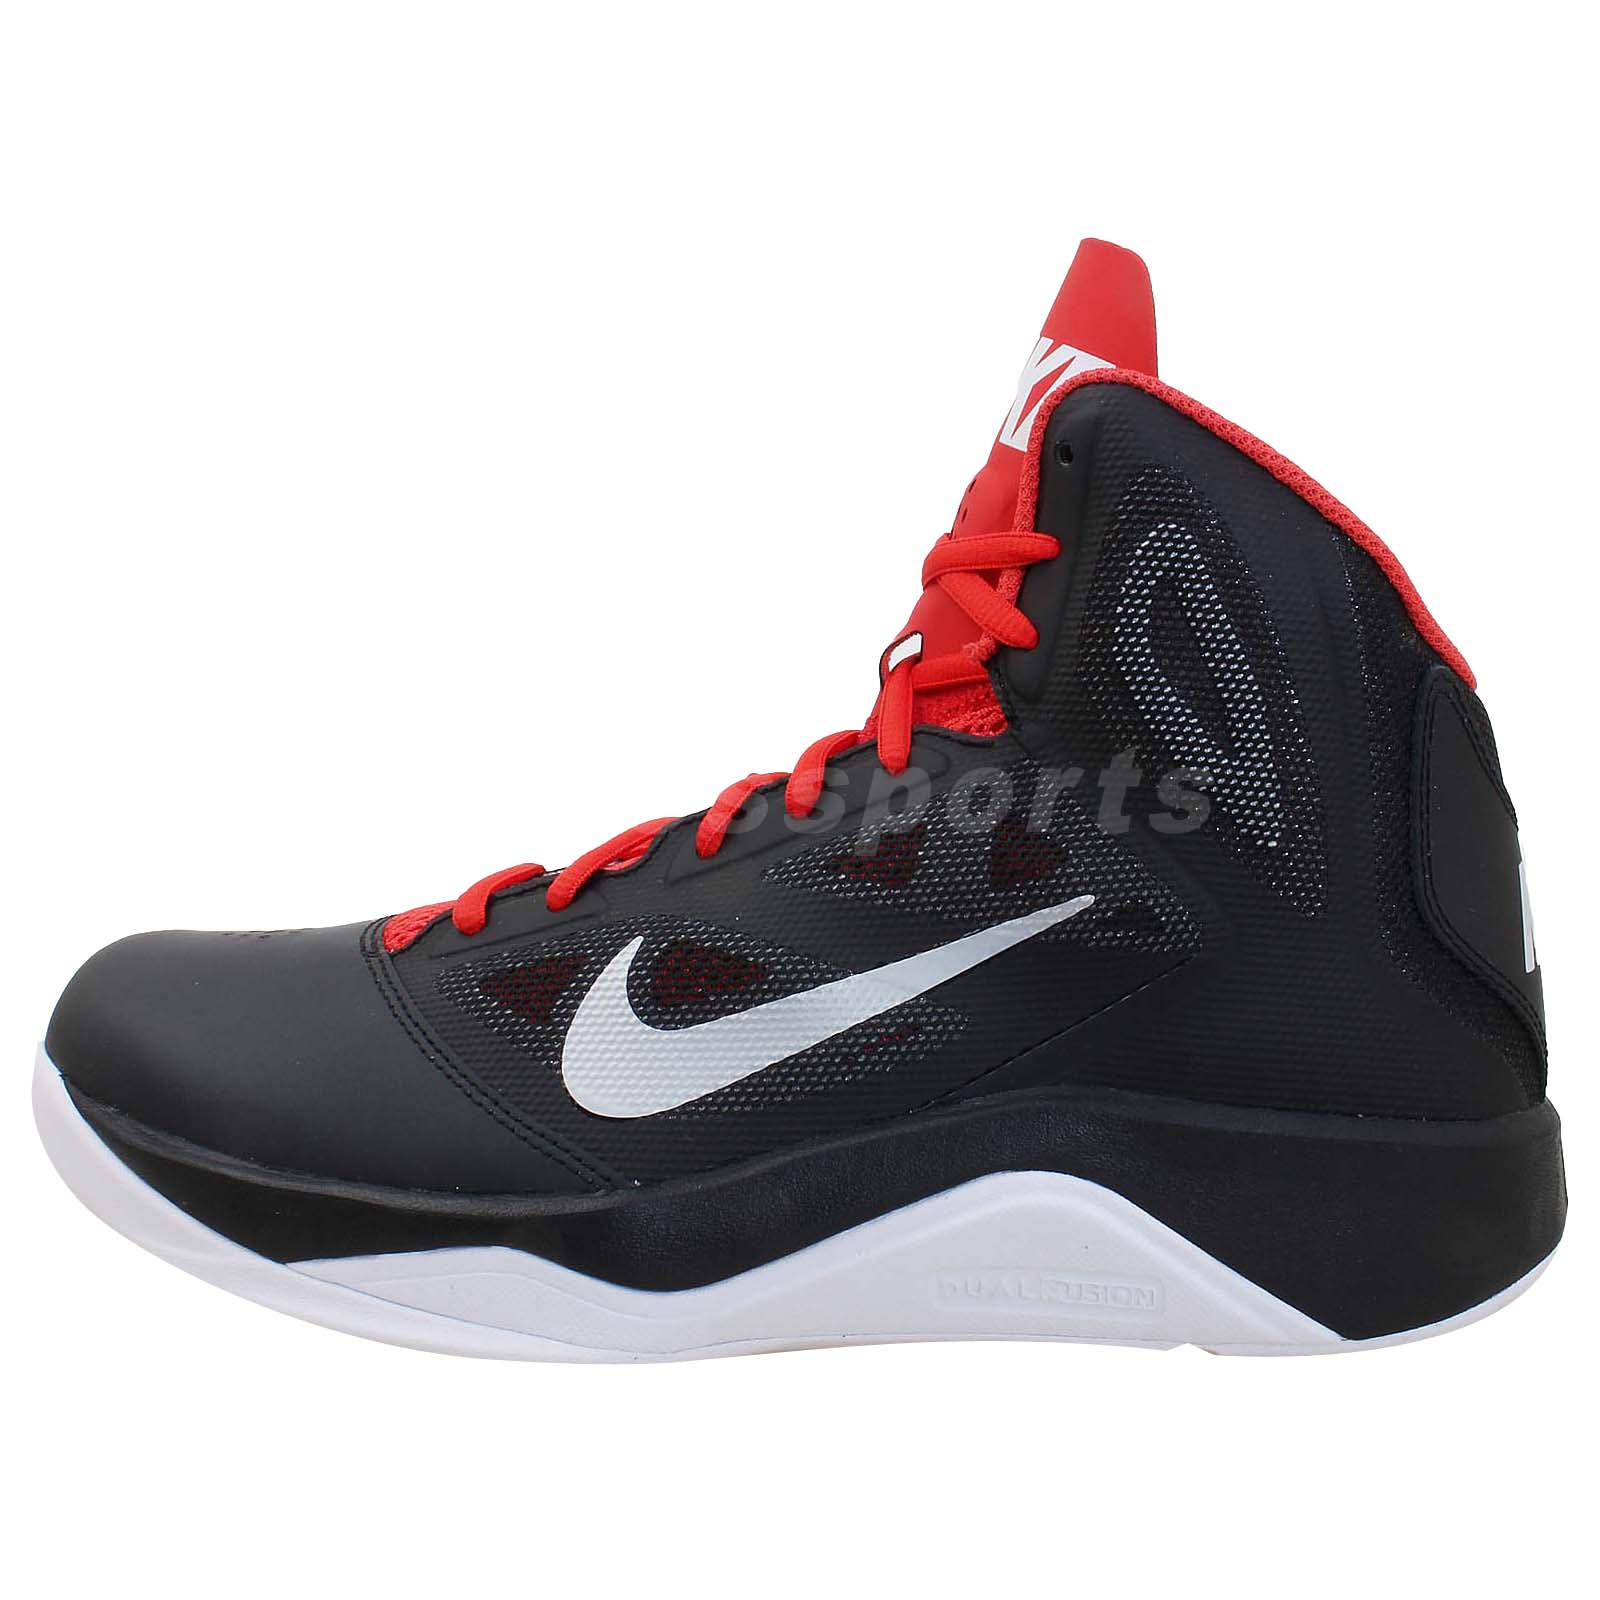 Pix For New Nike Basketball Shoes 2014 | Fashion's Feel ...